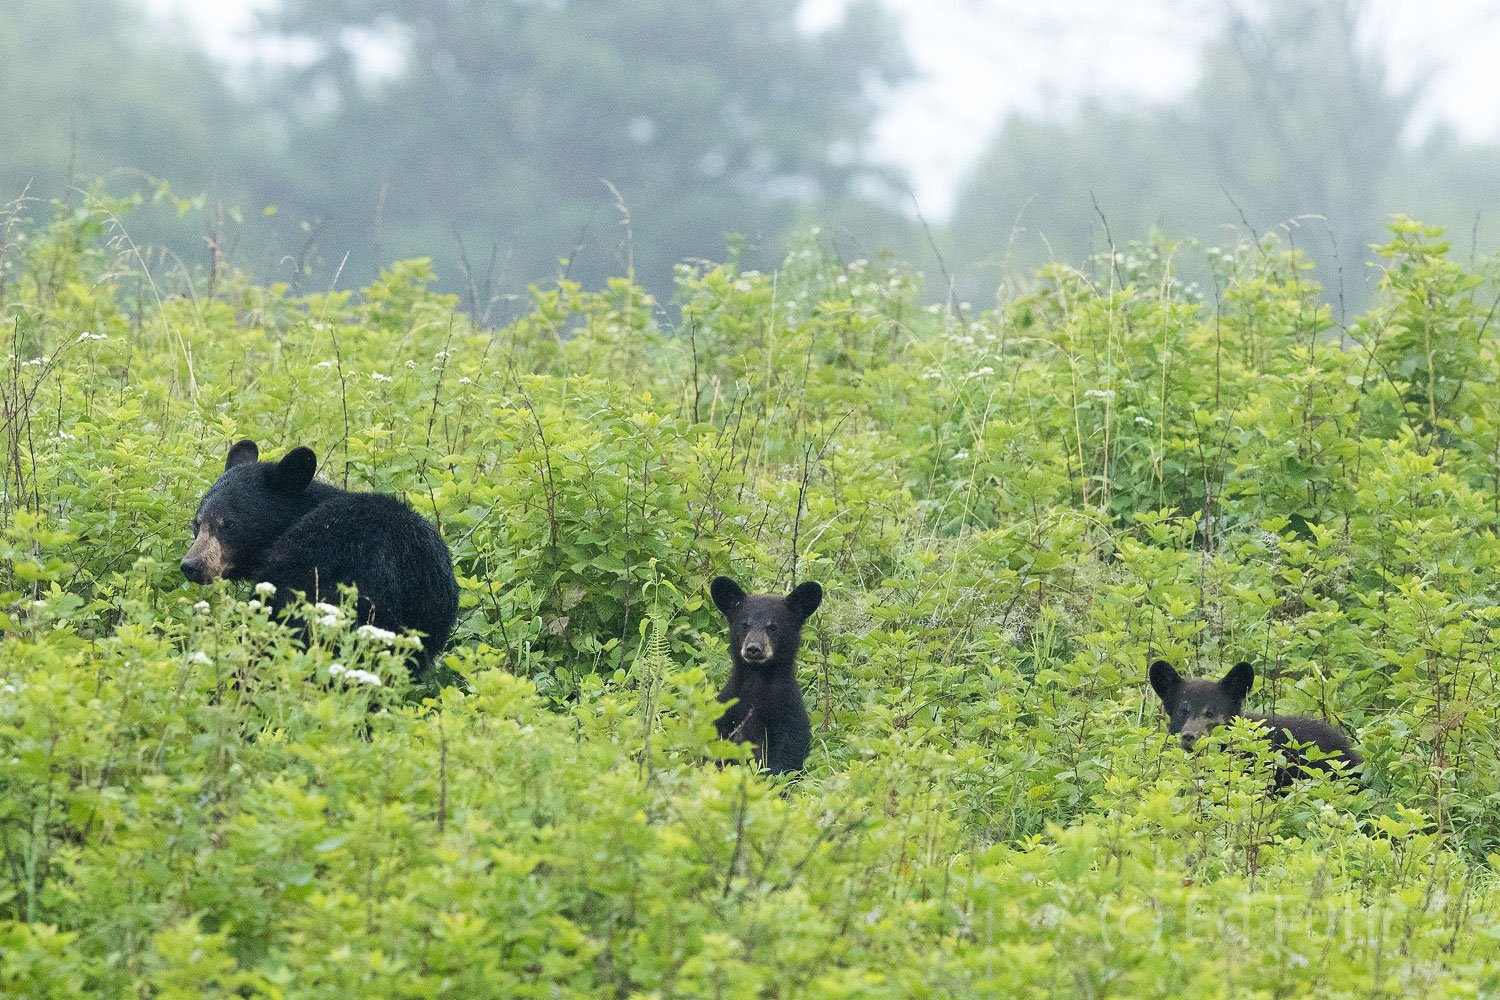 A family of three bears climb a hillside near Big Meadows.